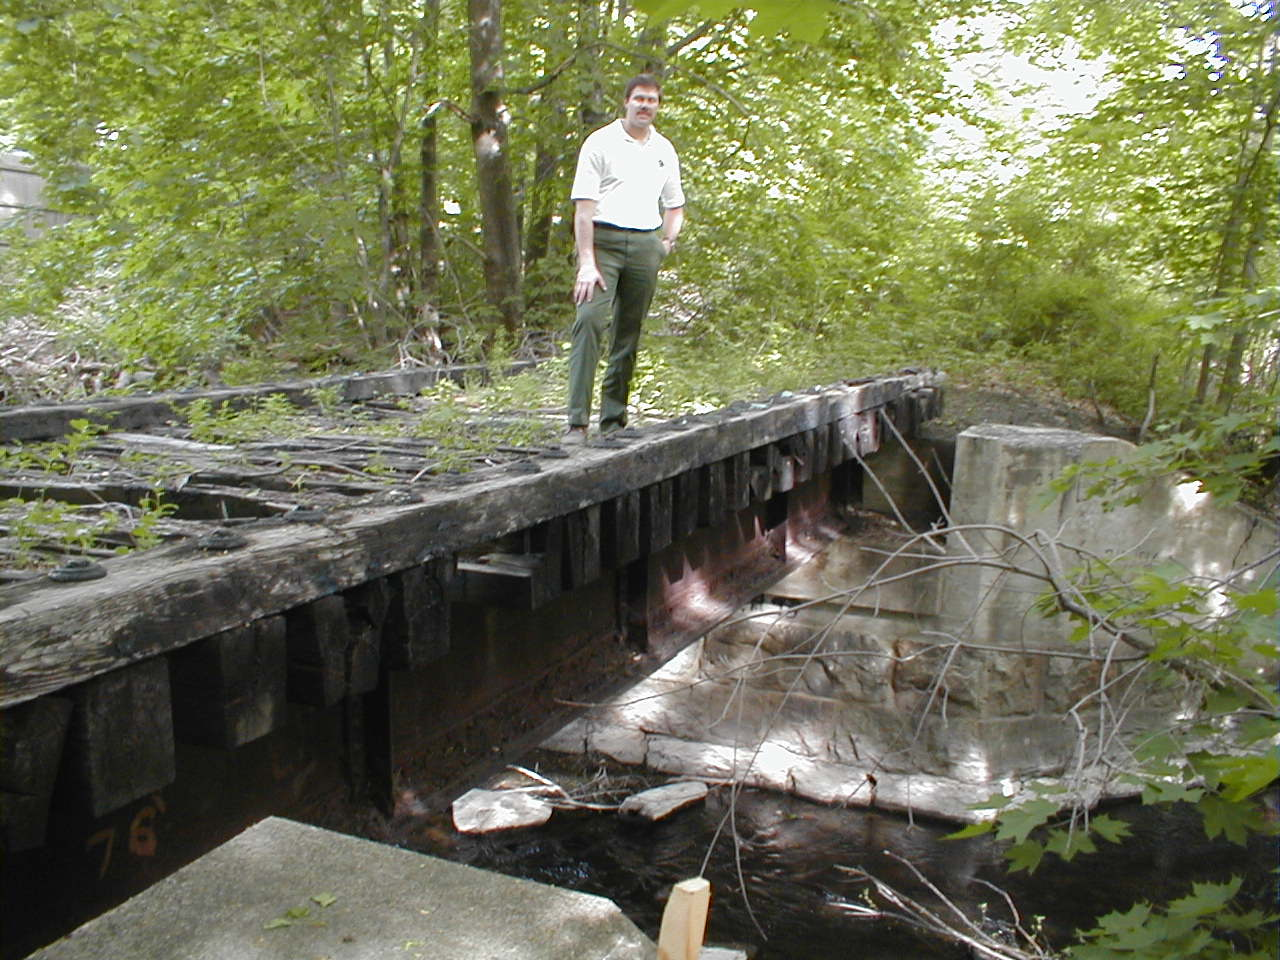 CRT bridge_oblique010514 Some improvements take major steps. In 2001, Cochituate State Park Supervisor Carey VandenAkker demonstrates the deteriorated deck of one of two railroad bridges just north of Old Connecticut Path. Creosoted timbers and crossties are heavy, and don't mix well with the trout in Cochituate Brook.